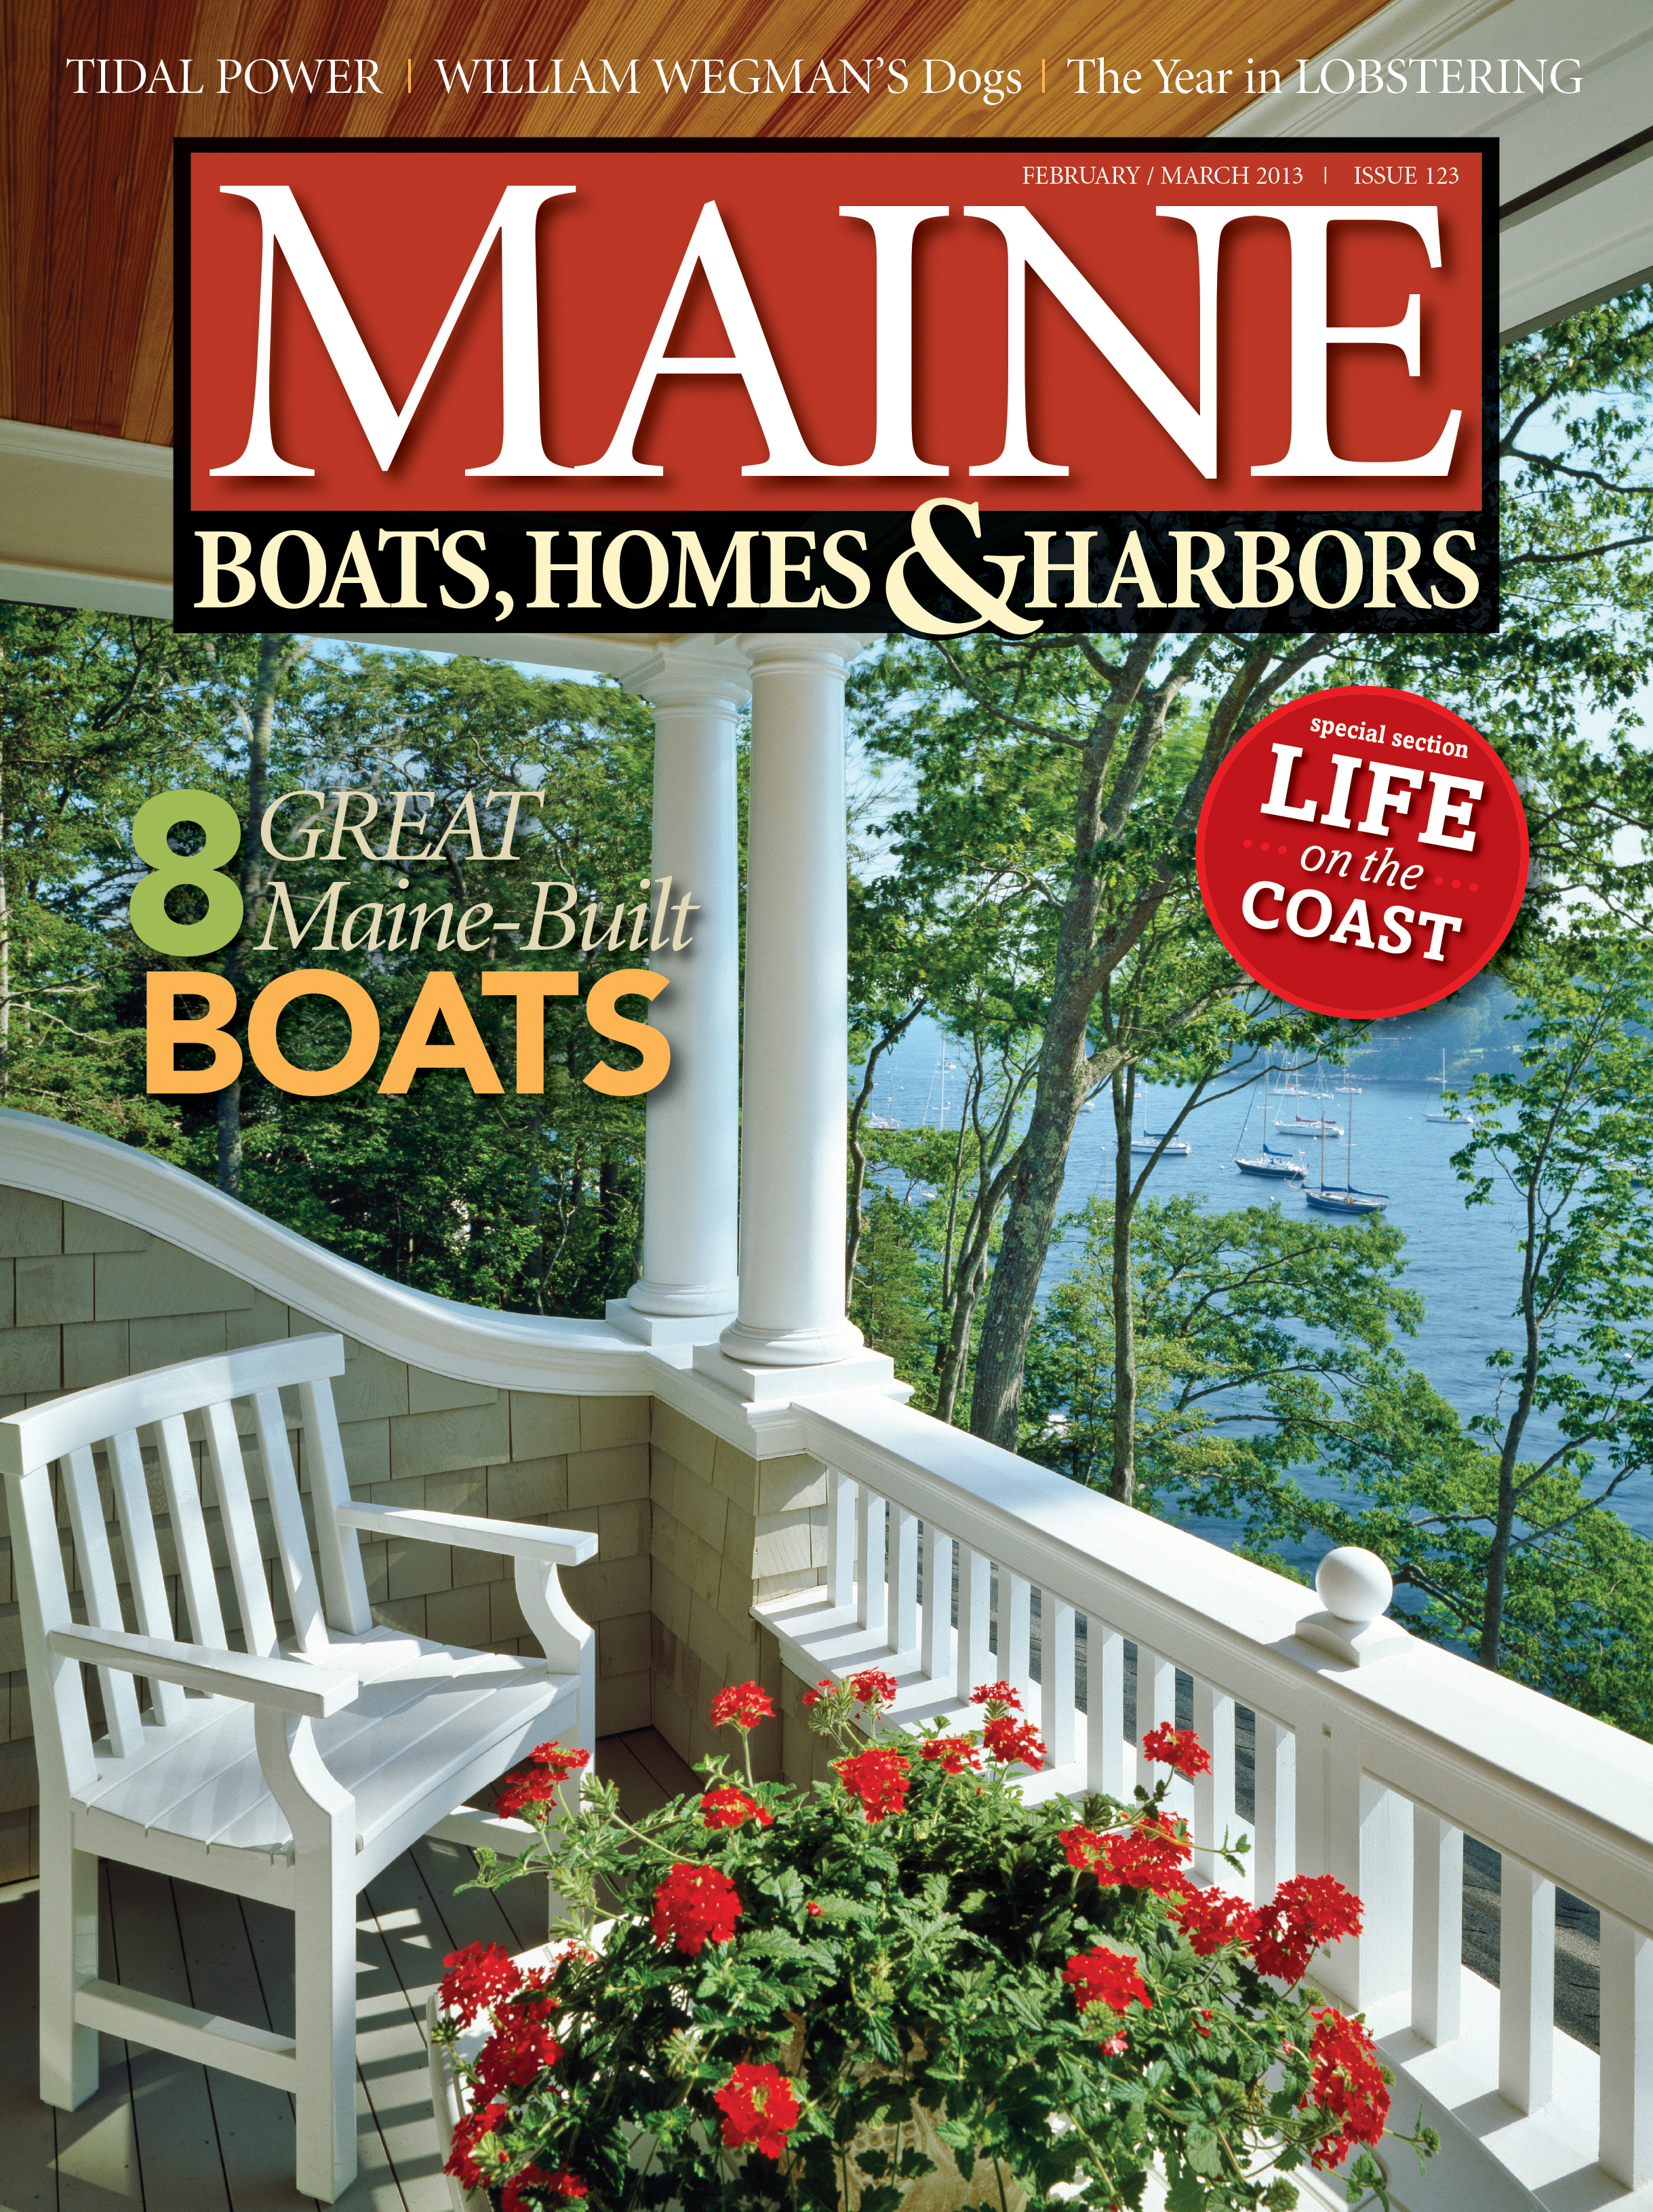 Maine Boats, Homes & Harbors, Issue 123